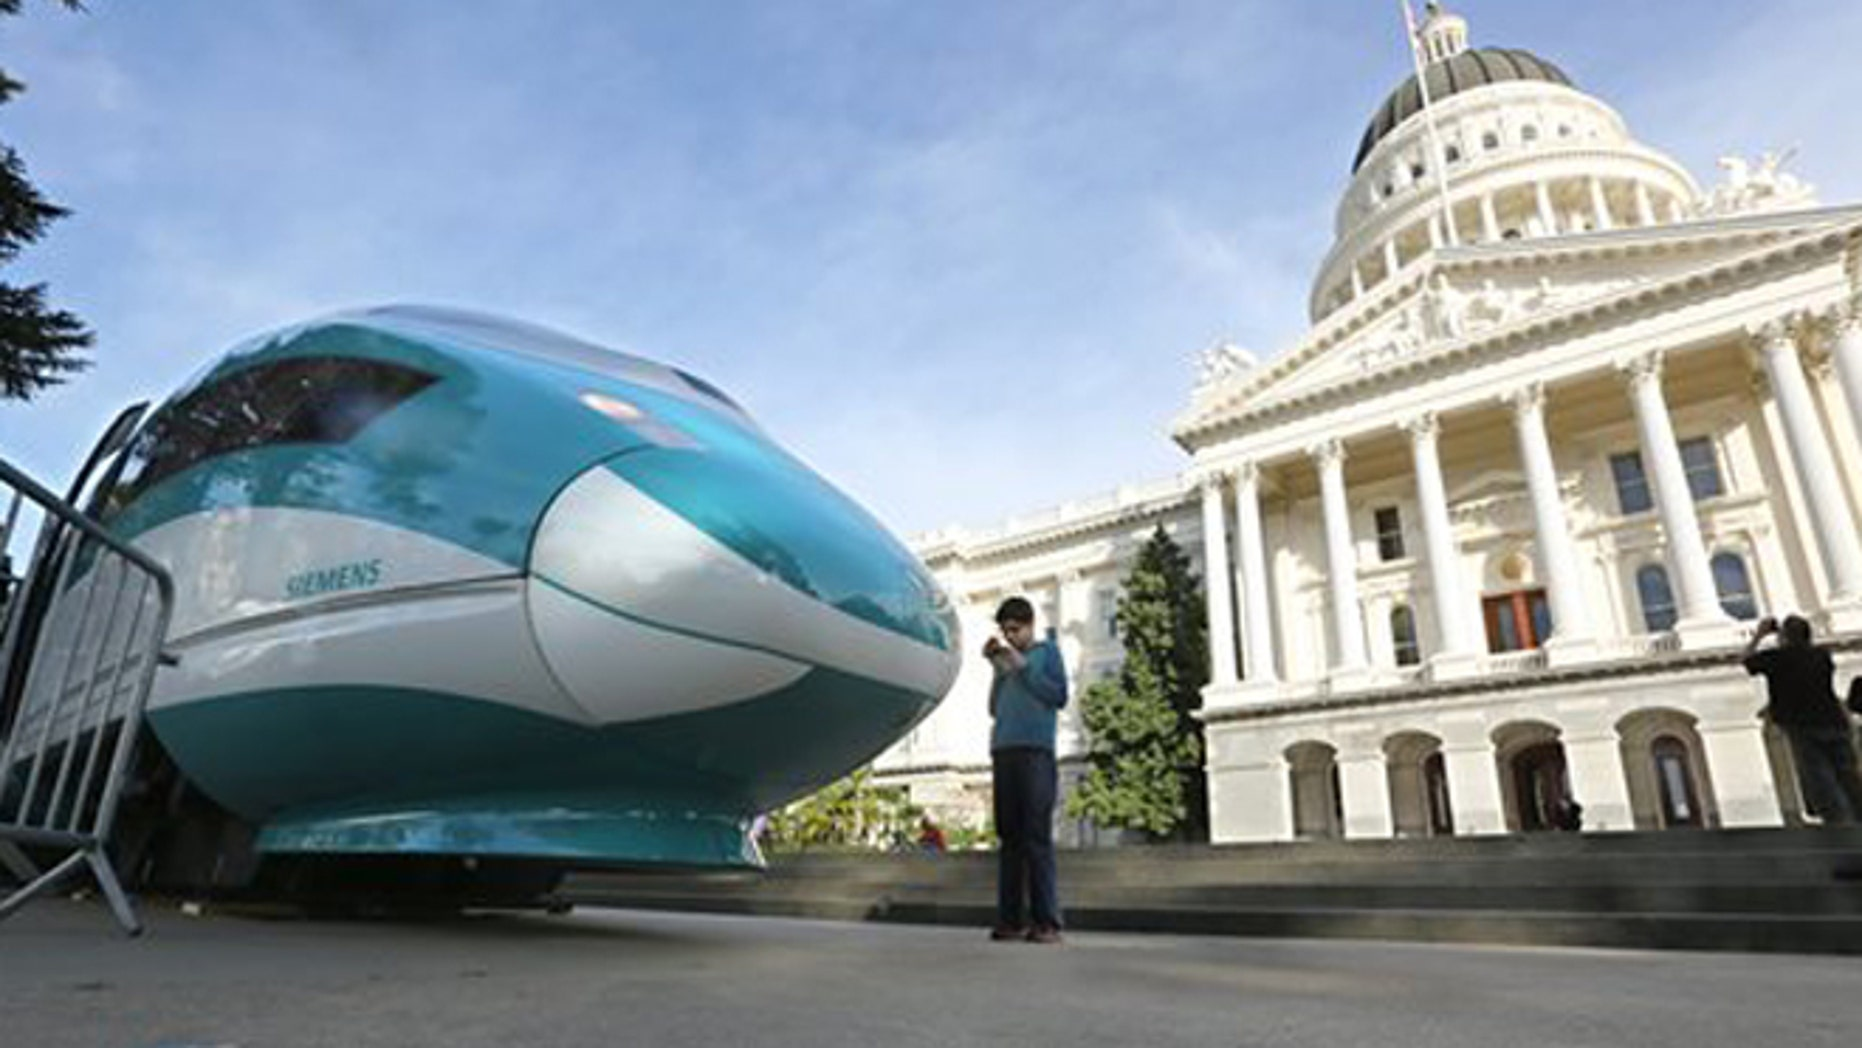 FILE - In this Feb. 26, 2015 file photo, a full-scale mock-up of a high-speed train is displayed at the Capitol in Sacramento, Calif. State officials will return to Sacramento Superior Court, Thursday, Feb. 11, 2016, to defend the project against critics who say high-speed rail cannot meet promises made to voters who approved a $9.9 billion bond measure to build it. (AP Photo/Rich Pedroncelli, File)